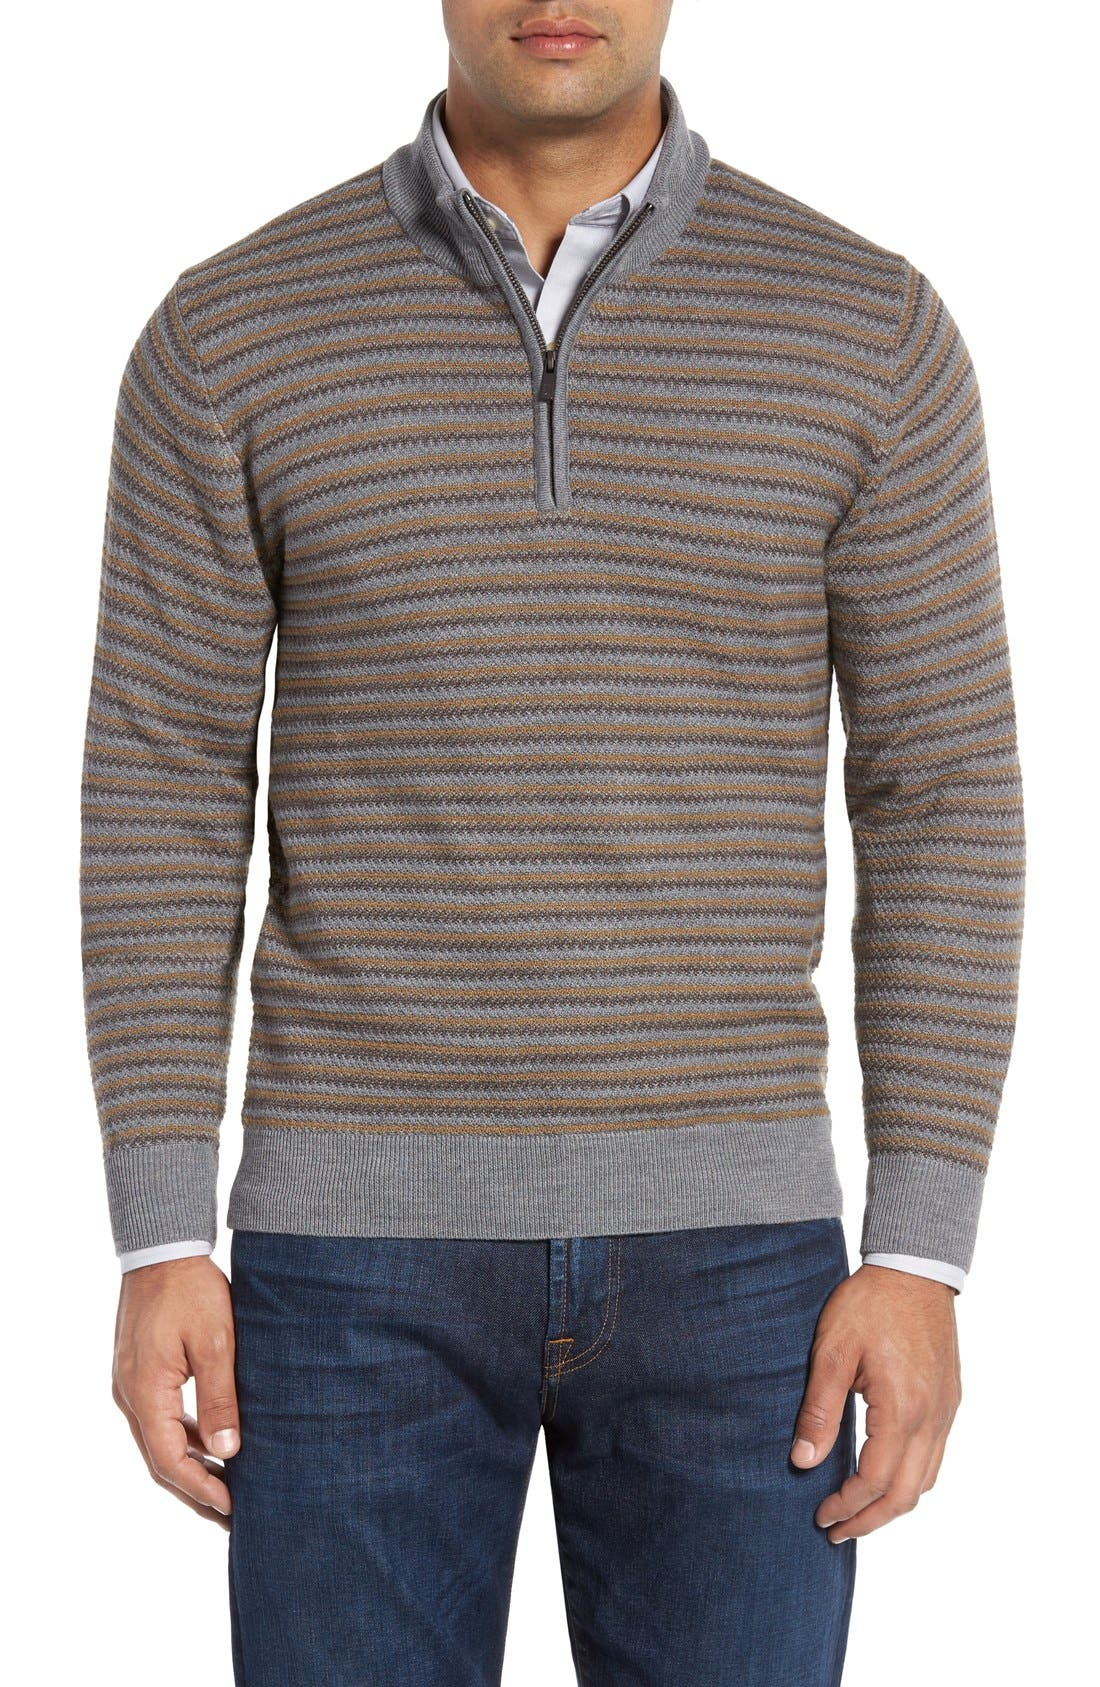 Cutter & Buck 'Douglas Range' Quarter Zip Stripe Wool Blend Sweater (Big & Tall)